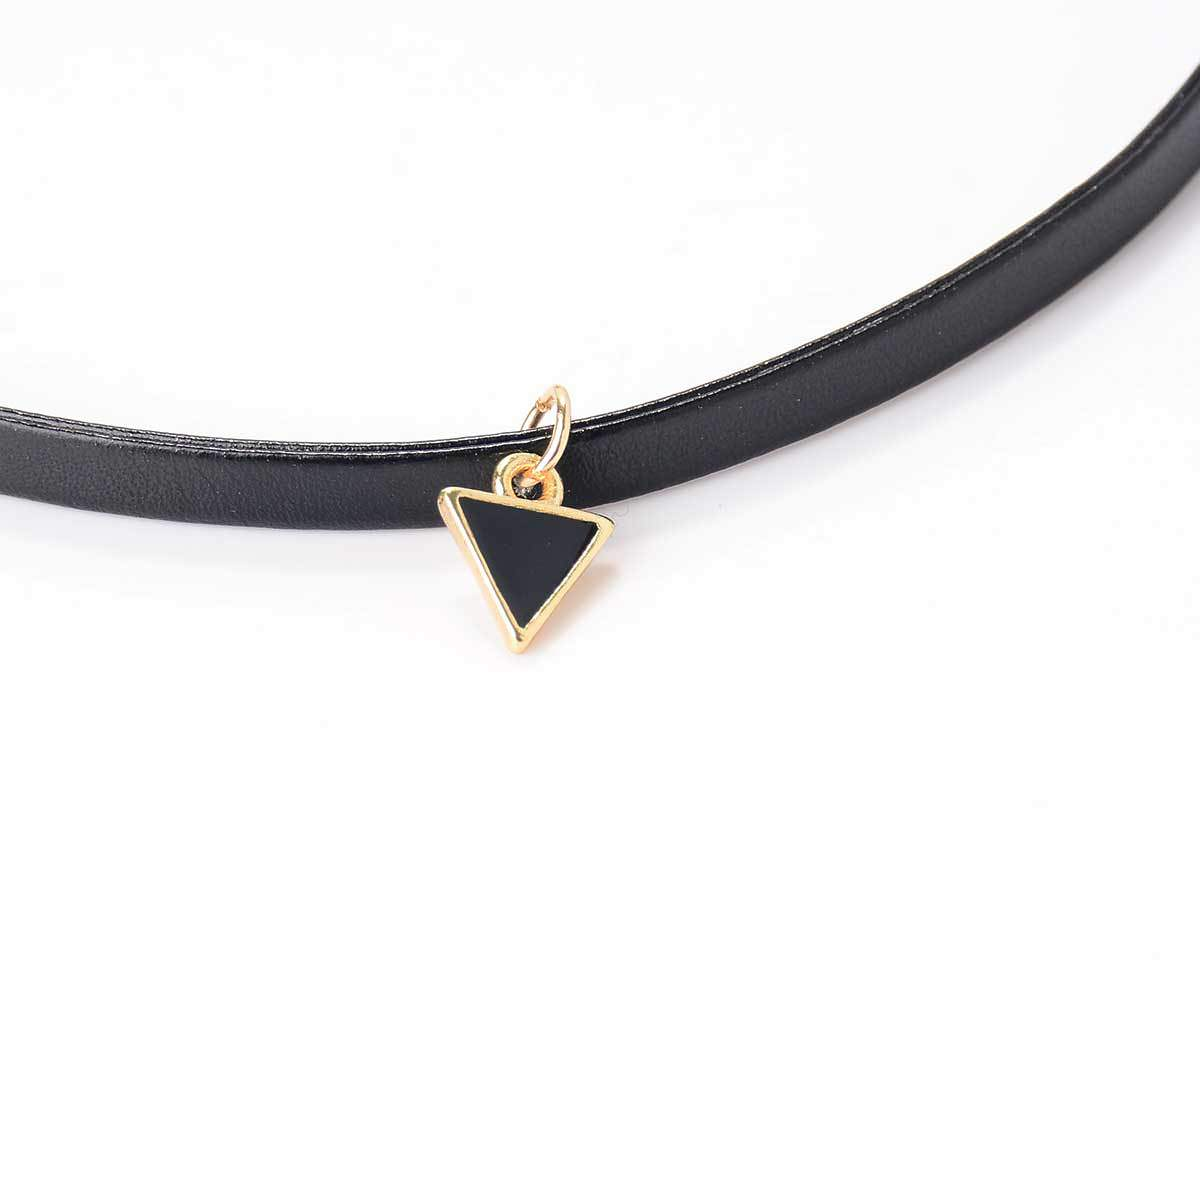 5028-538dbce4c0d2c90de750f75141d8bb5b Trendy Punk Style Leather Rope Choker Necklace With Triangle Pendant